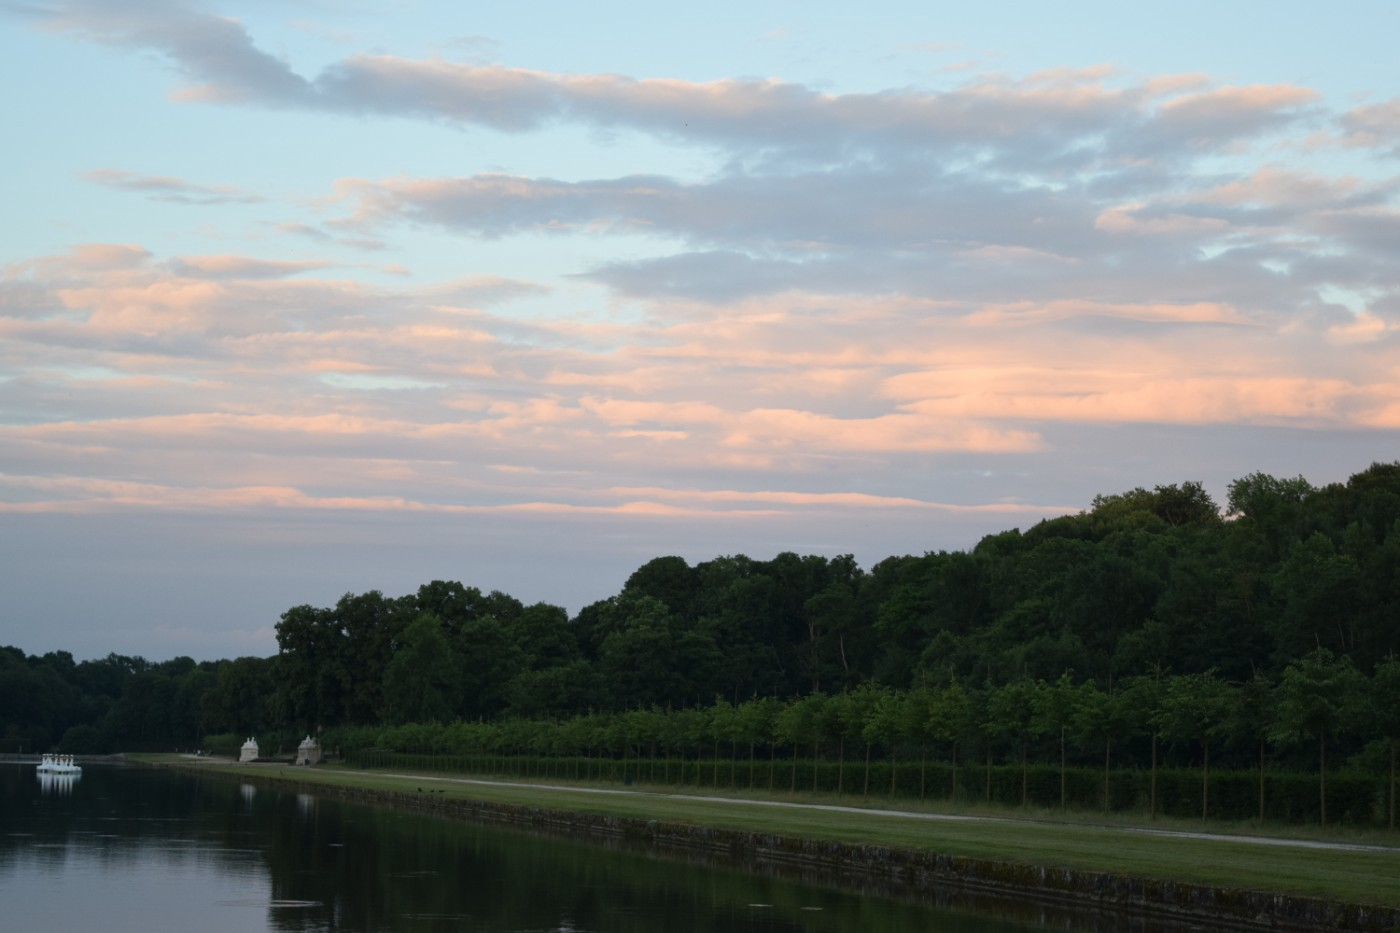 Swan boats floating under cotton-candy skies just outside the Château de Vaux-le-Vicomte.